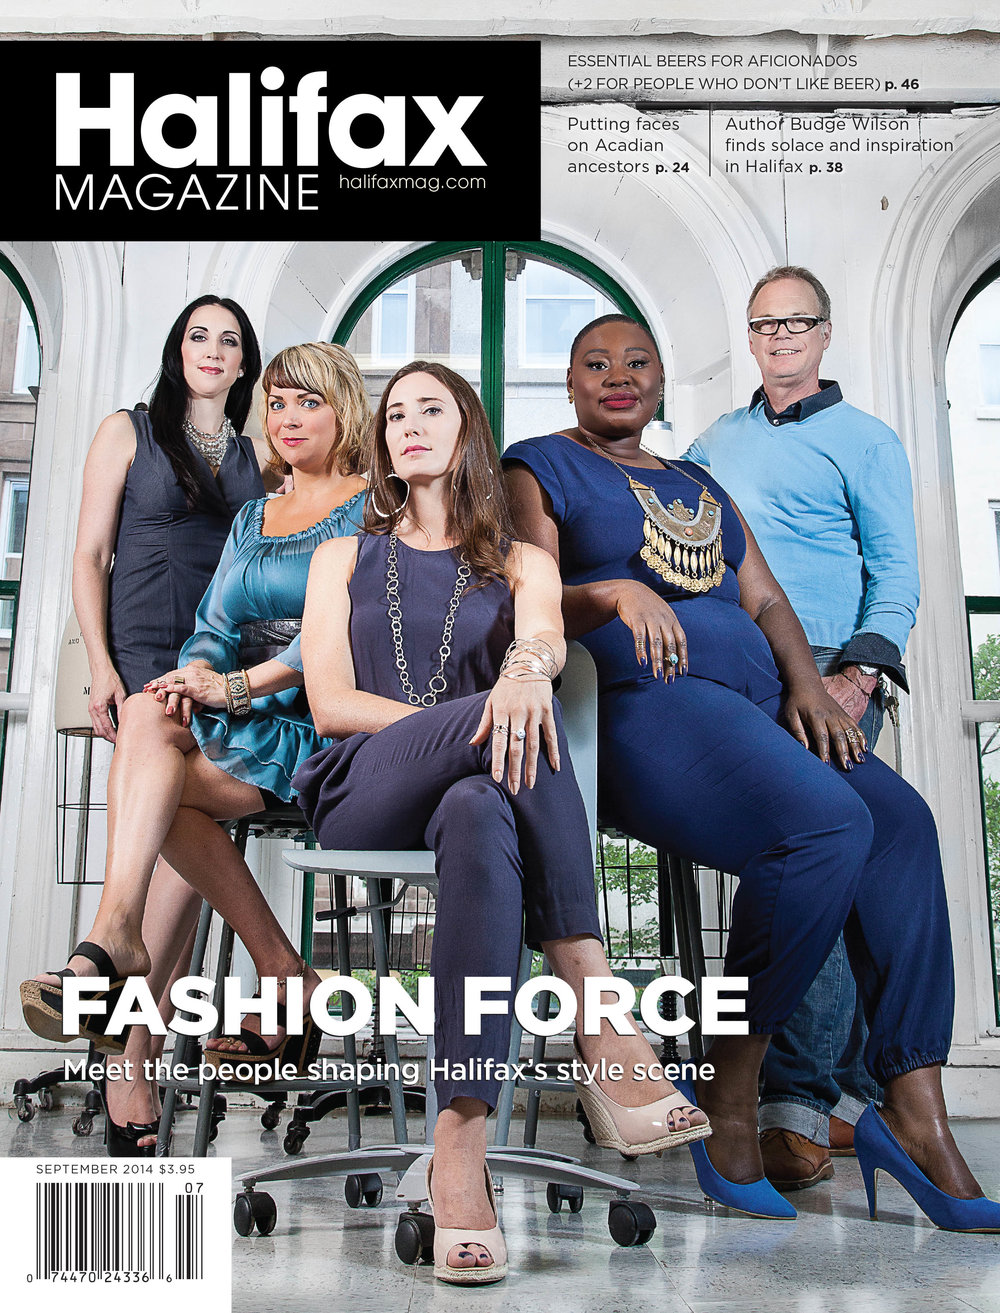 FashionForce-HM-Sept14-cover.jpg